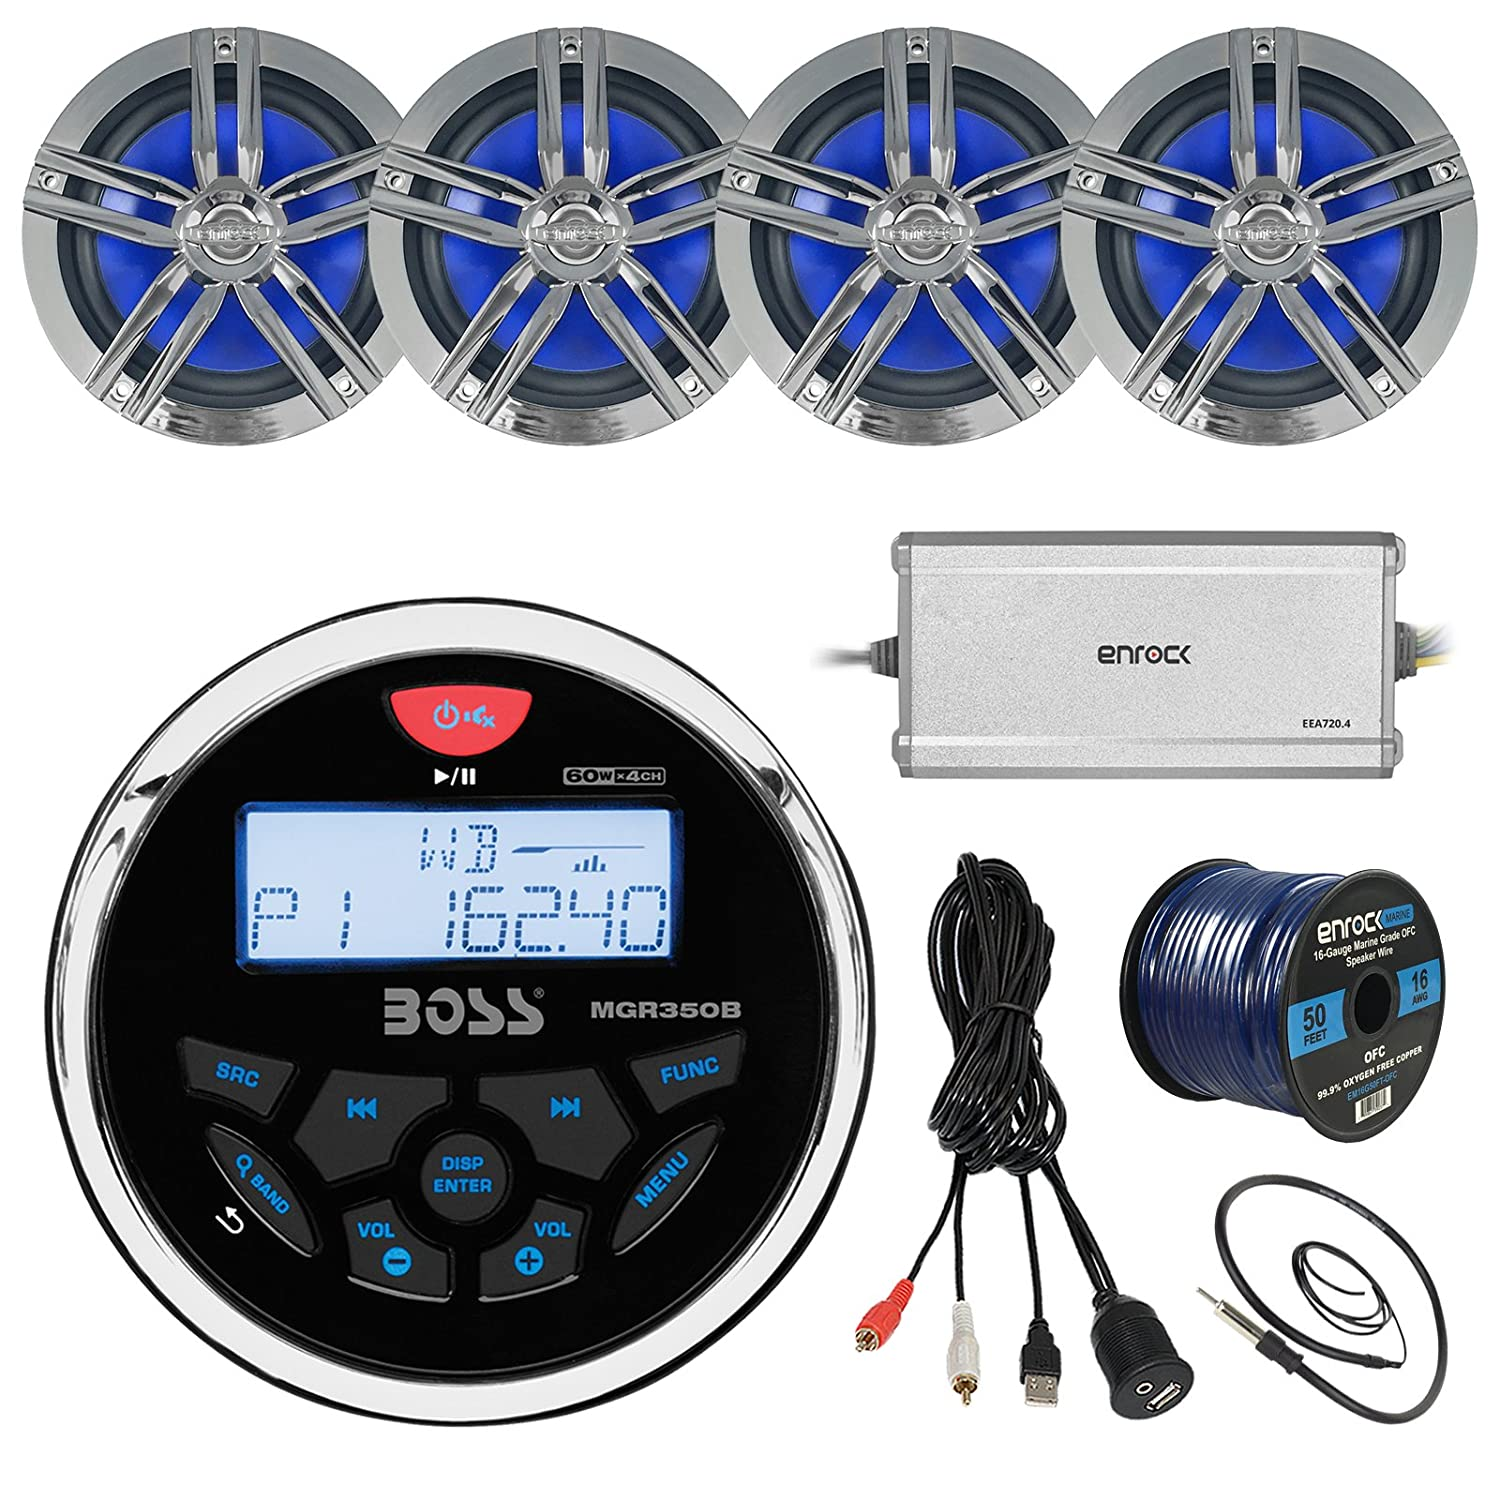 Boss Audio MGR350B Bluetooth in Dash Marine Gauge Style Digital Media AM//FM Receiver Bundle Combo with Enrock USB 3.5MM AUX to RCA Interface Mount Cable Enrock 22 Wired Radio Antenna Boss Enrock MGR350B USBAUX2RC EKMR1